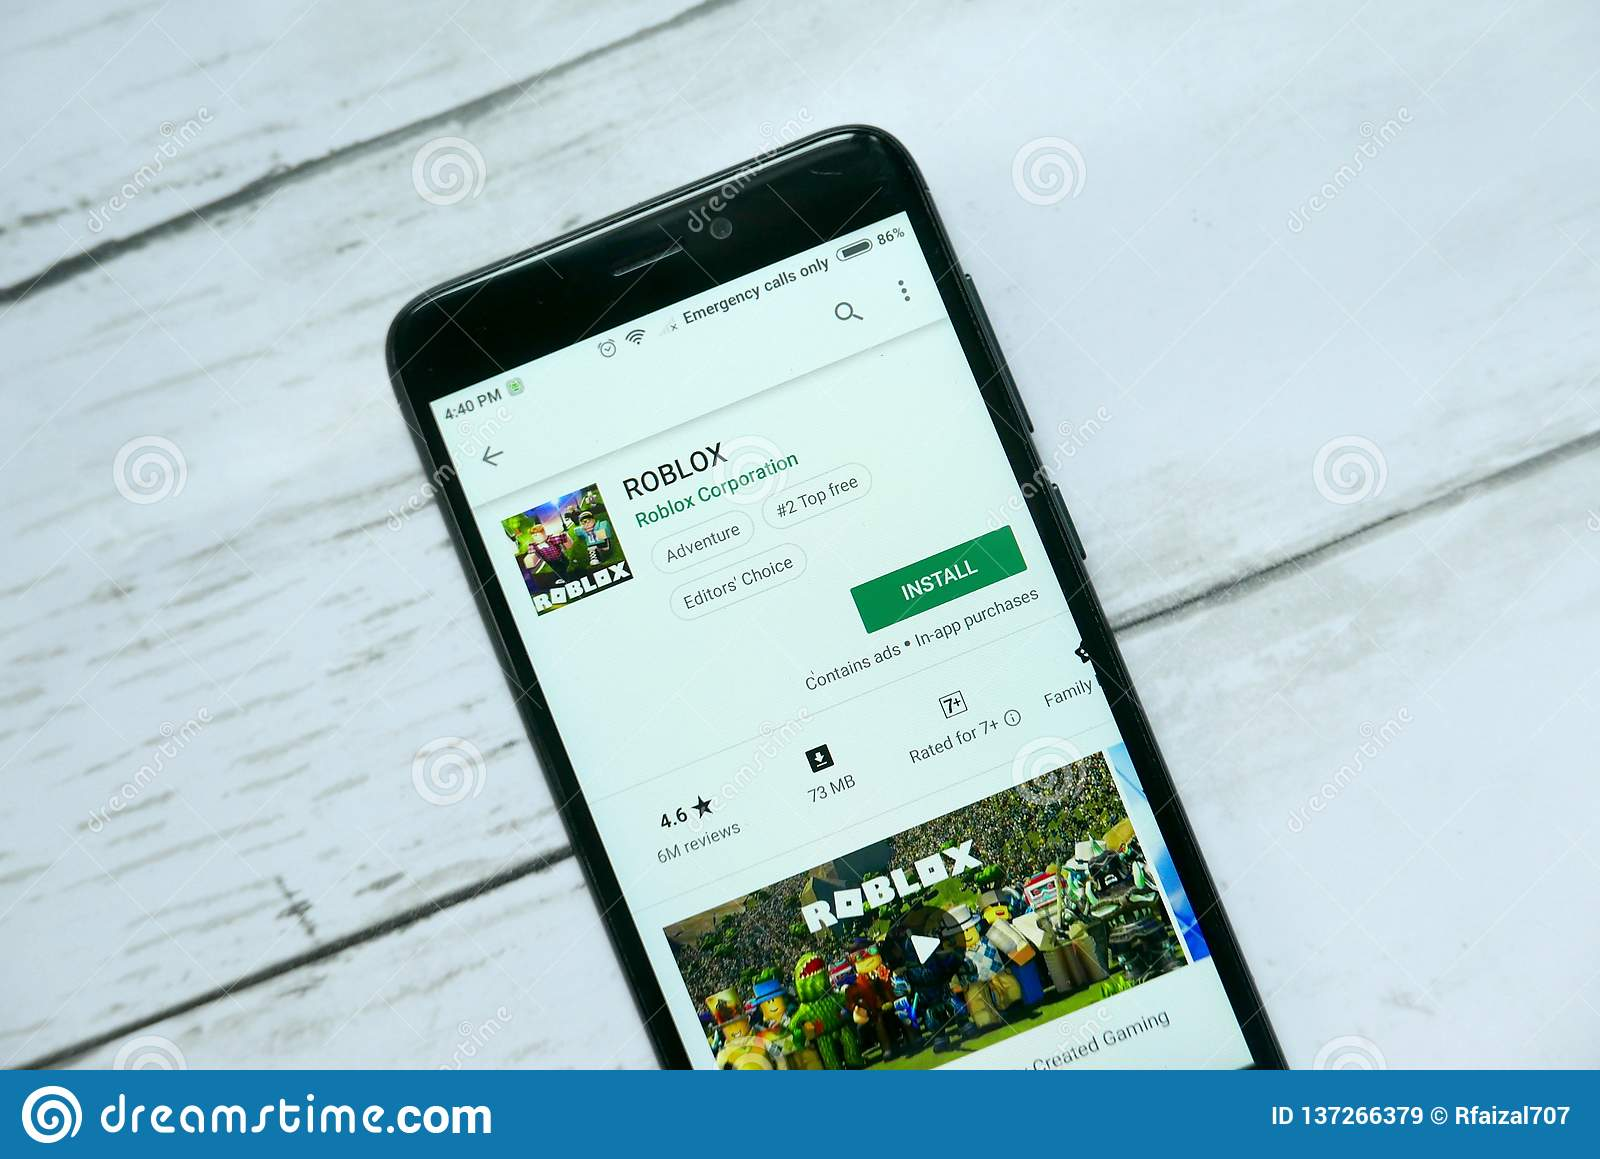 Roblox App Store Free 54 Roblox Photos Free Royalty Free Stock Photos From Dreamstime